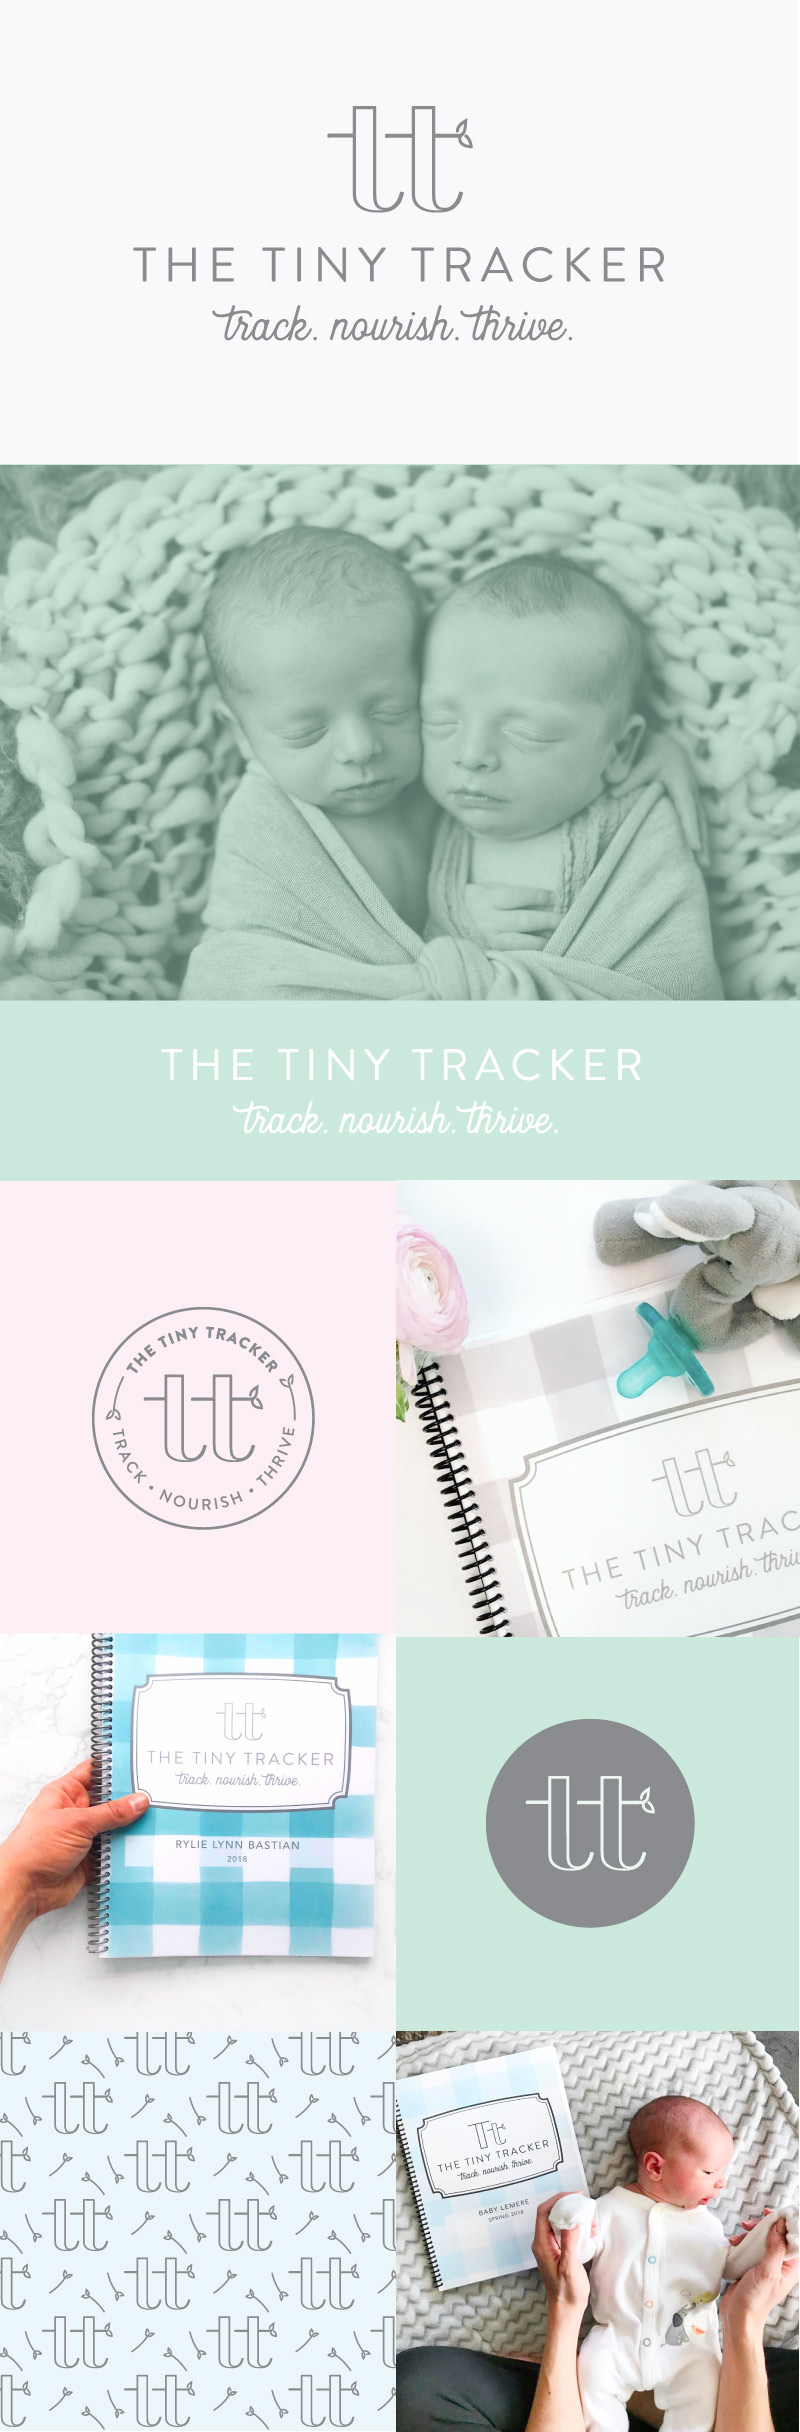 client-feature-tiny-tracker.jpg